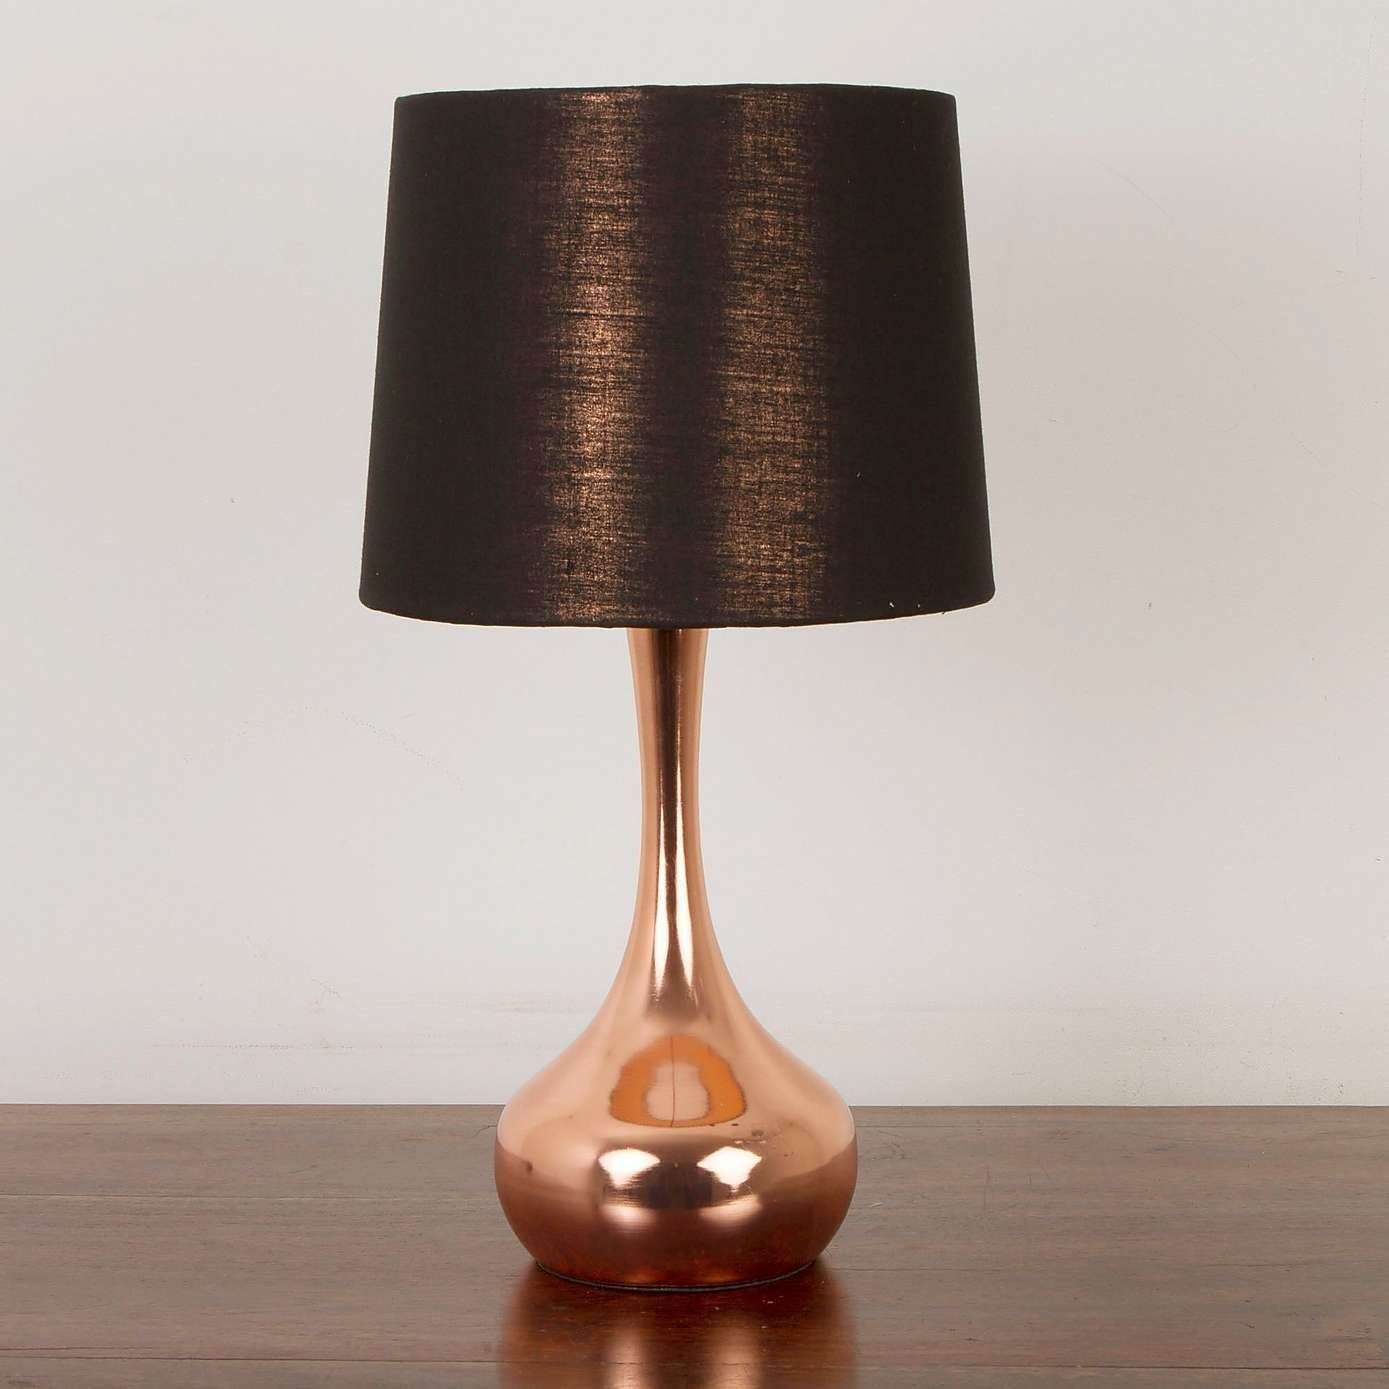 Dunelm lampshades for table lamps httpargharts dunelm lampshades for table lamps mozeypictures Images